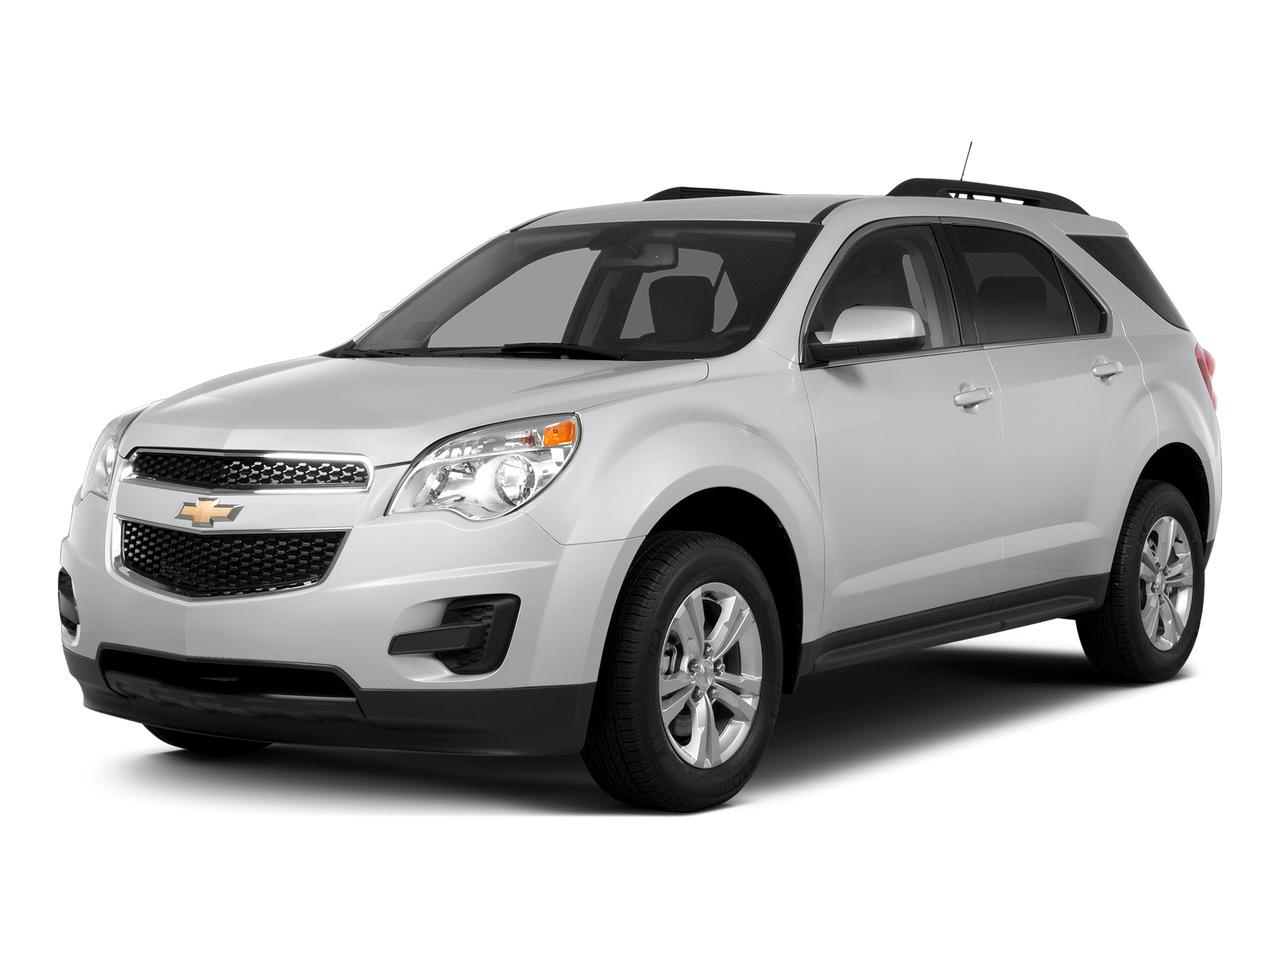 2015 Chevrolet Equinox Vehicle Photo in San Angelo, TX 76901